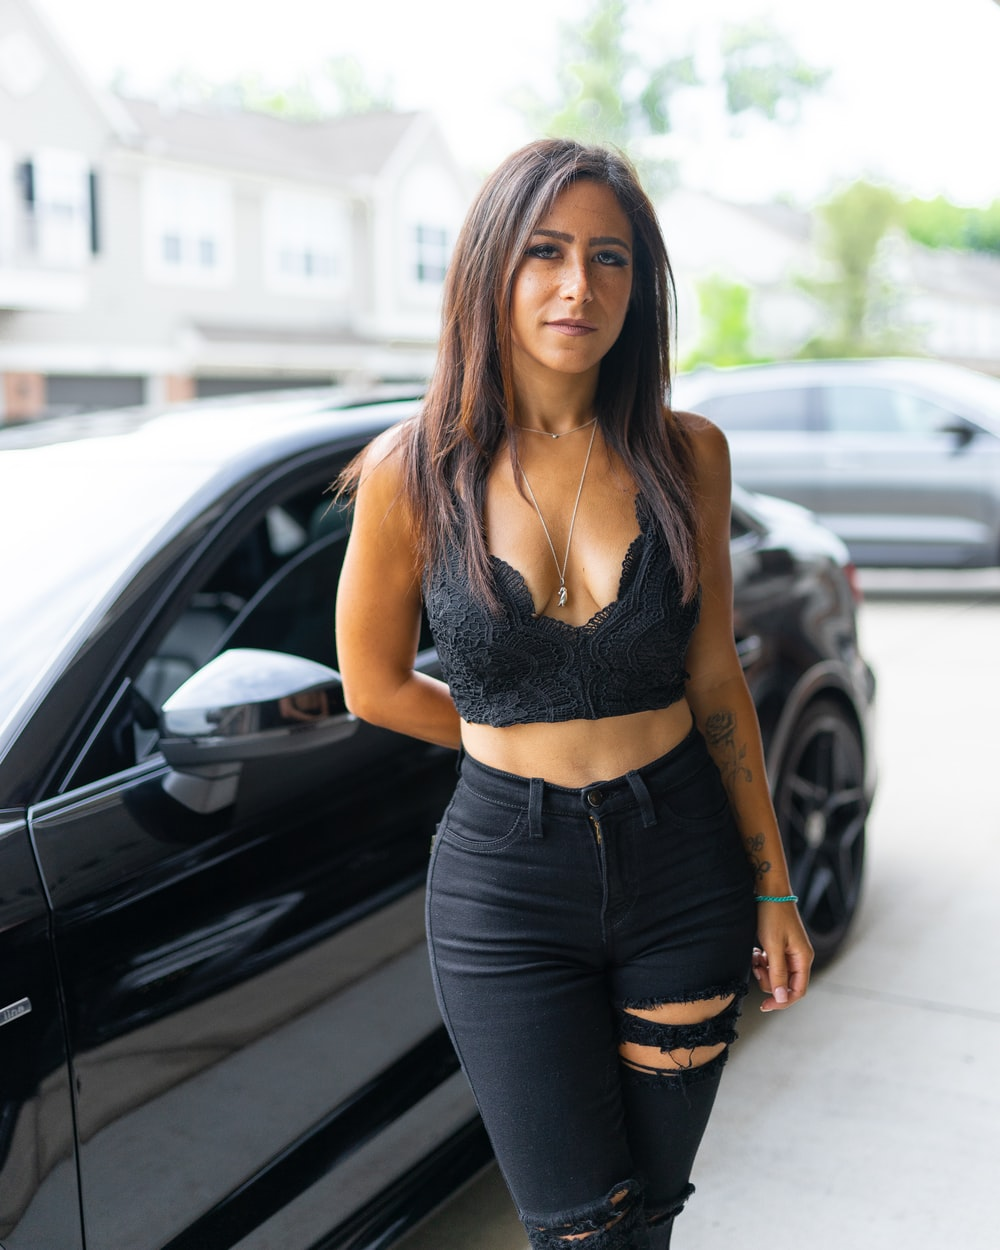 woman in black sports bra and blue denim jeans standing beside black car during daytime